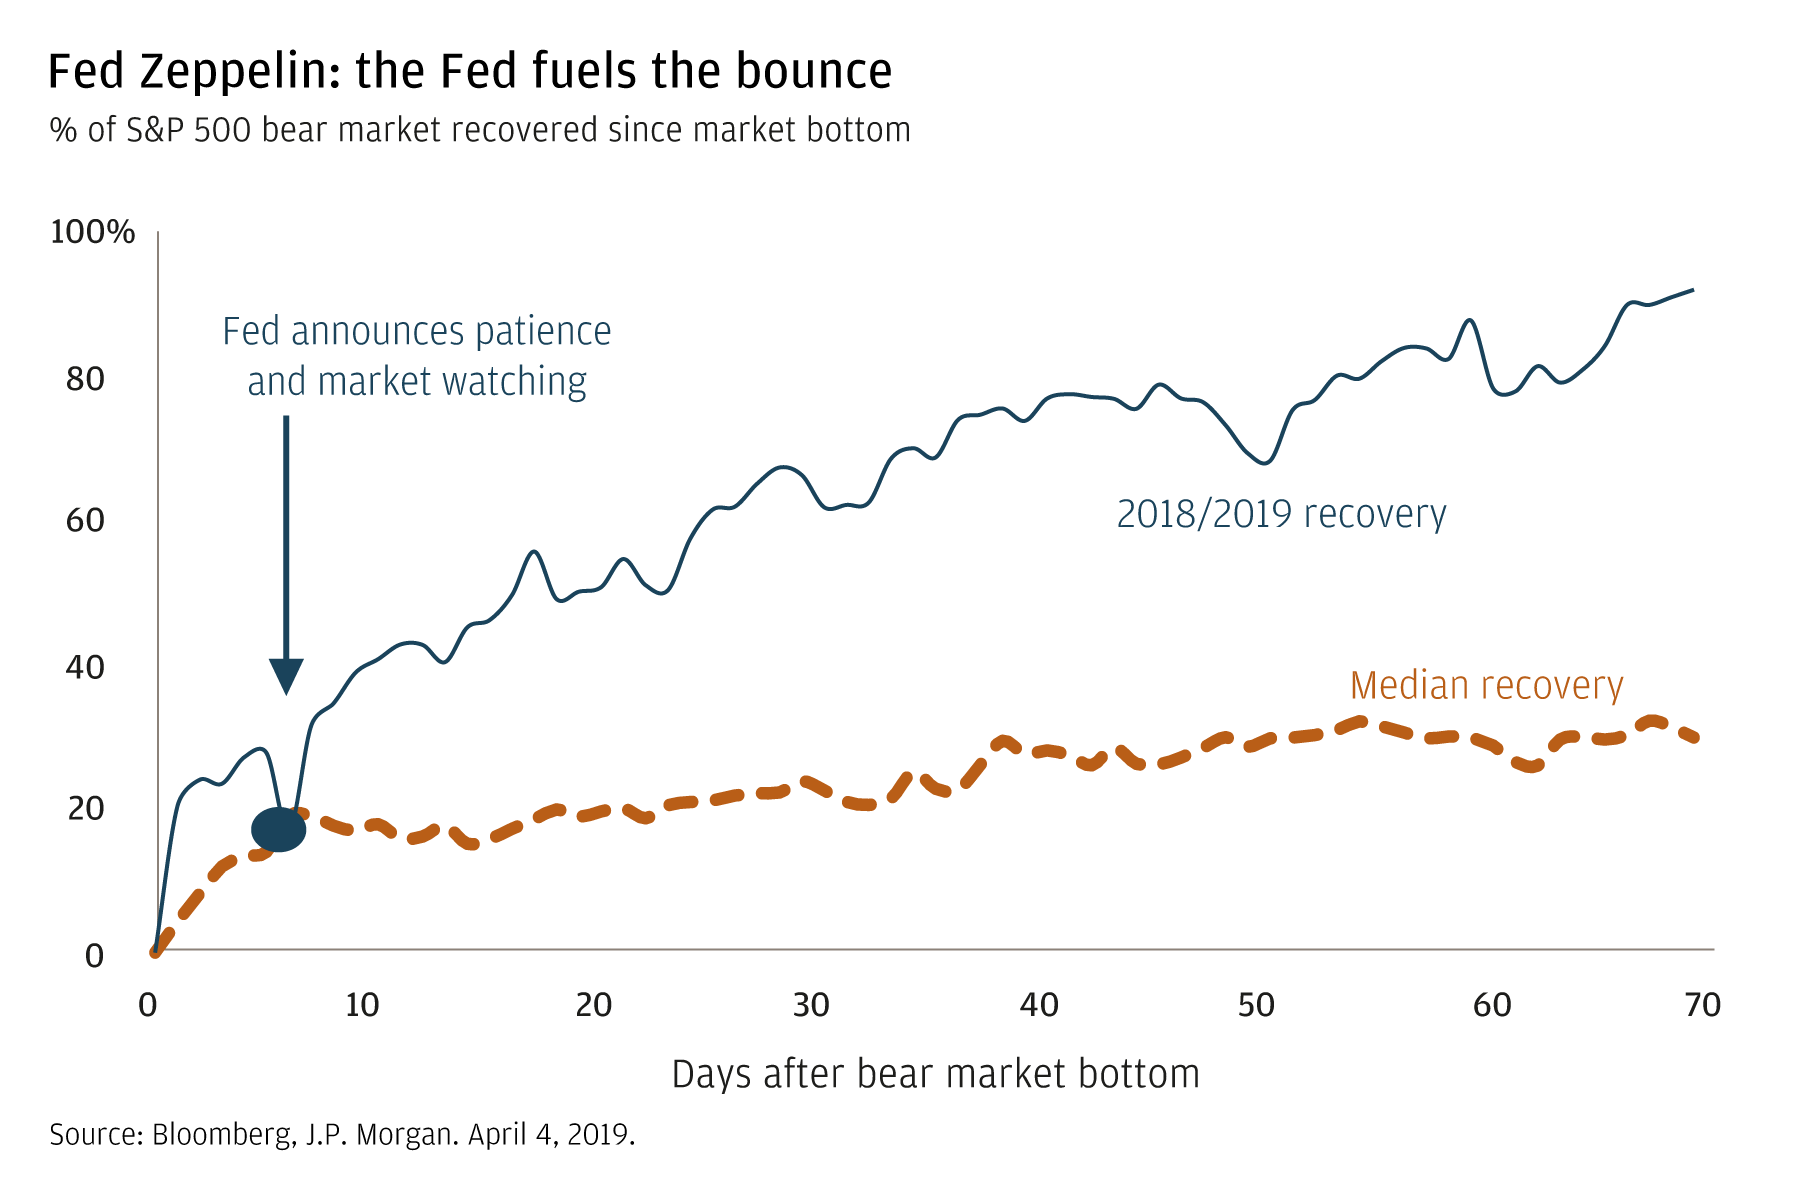 Fed Zeppelin: the Fed fuels the bounce